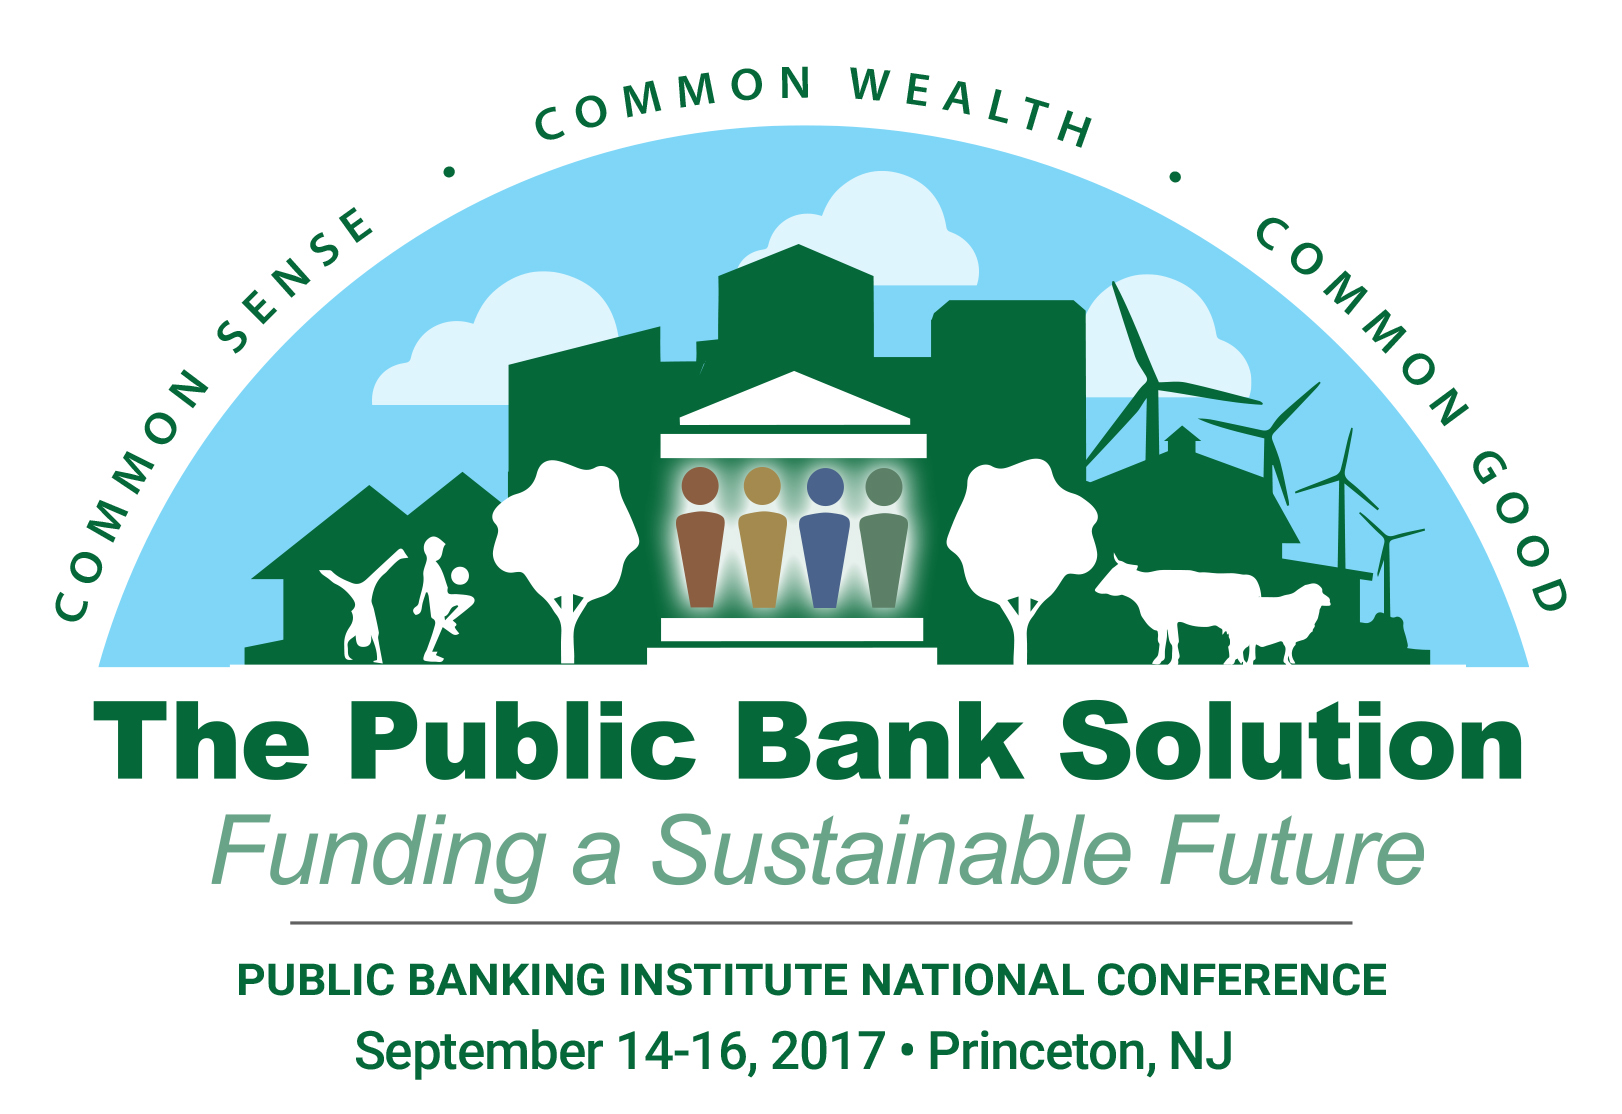 The Public Bank Solution: Funding a Sustainable Future